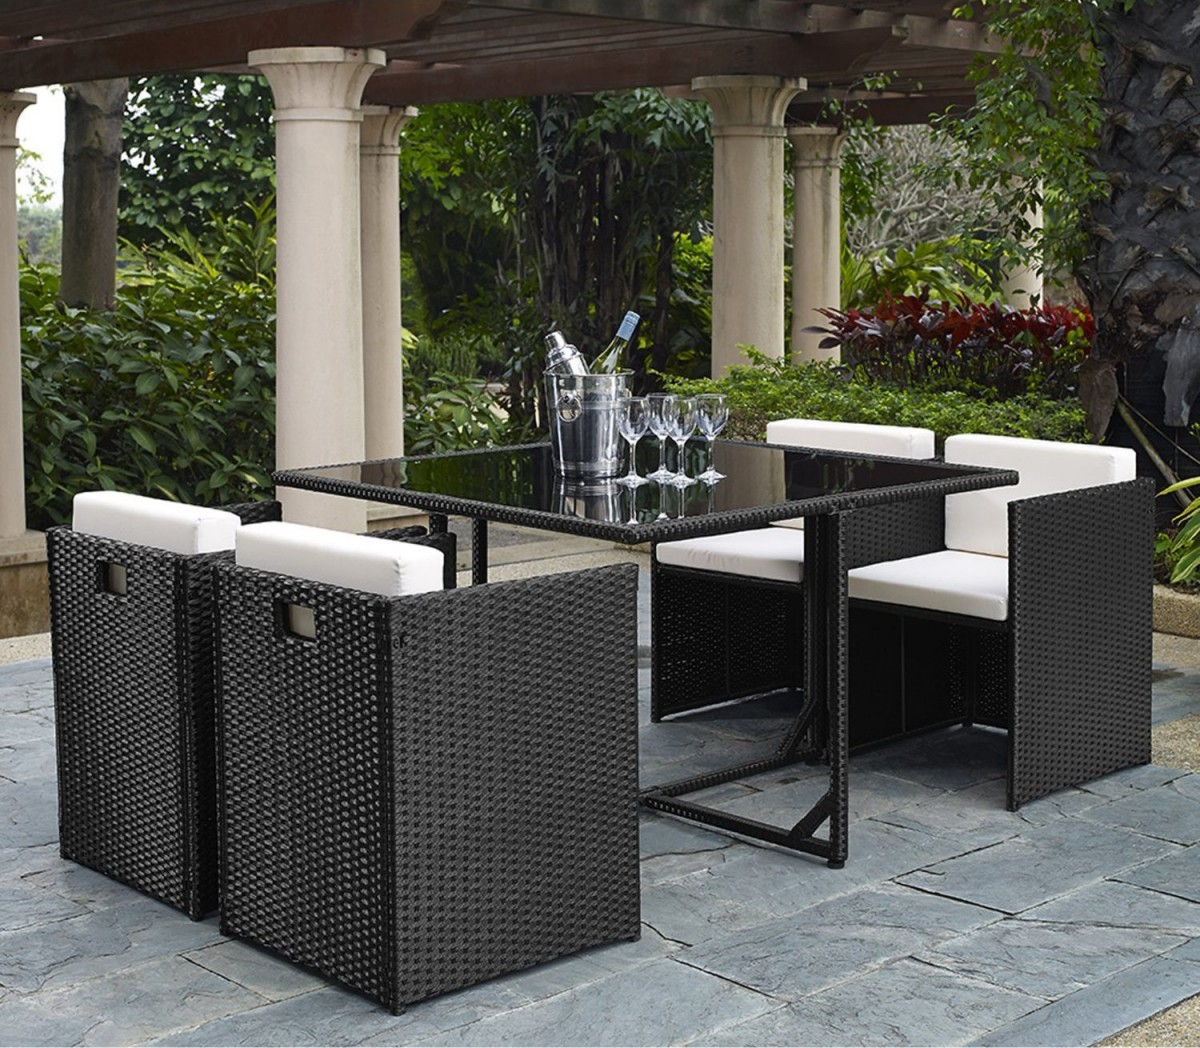 Beautiful And Modern Outdoor Furniture Garden Ideas: 5 Piece Rattan Cube Garden Furniture Set W/ Stowaway Chairs